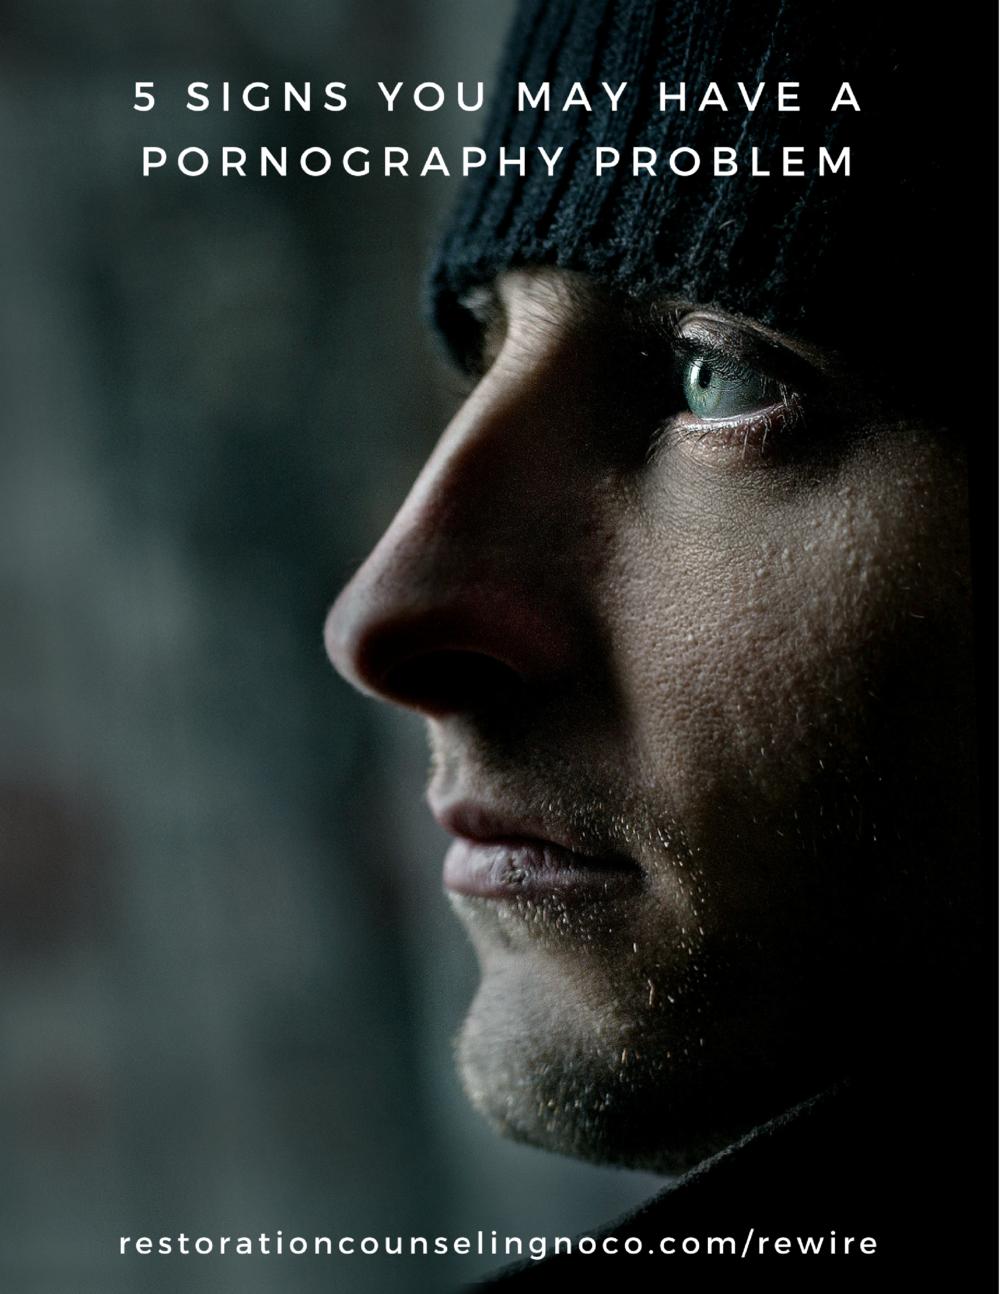 IS PORNOGRAPHY A PROBLEM FOR YOU OR A LOVED ONE? CLICK TO FIND OUT